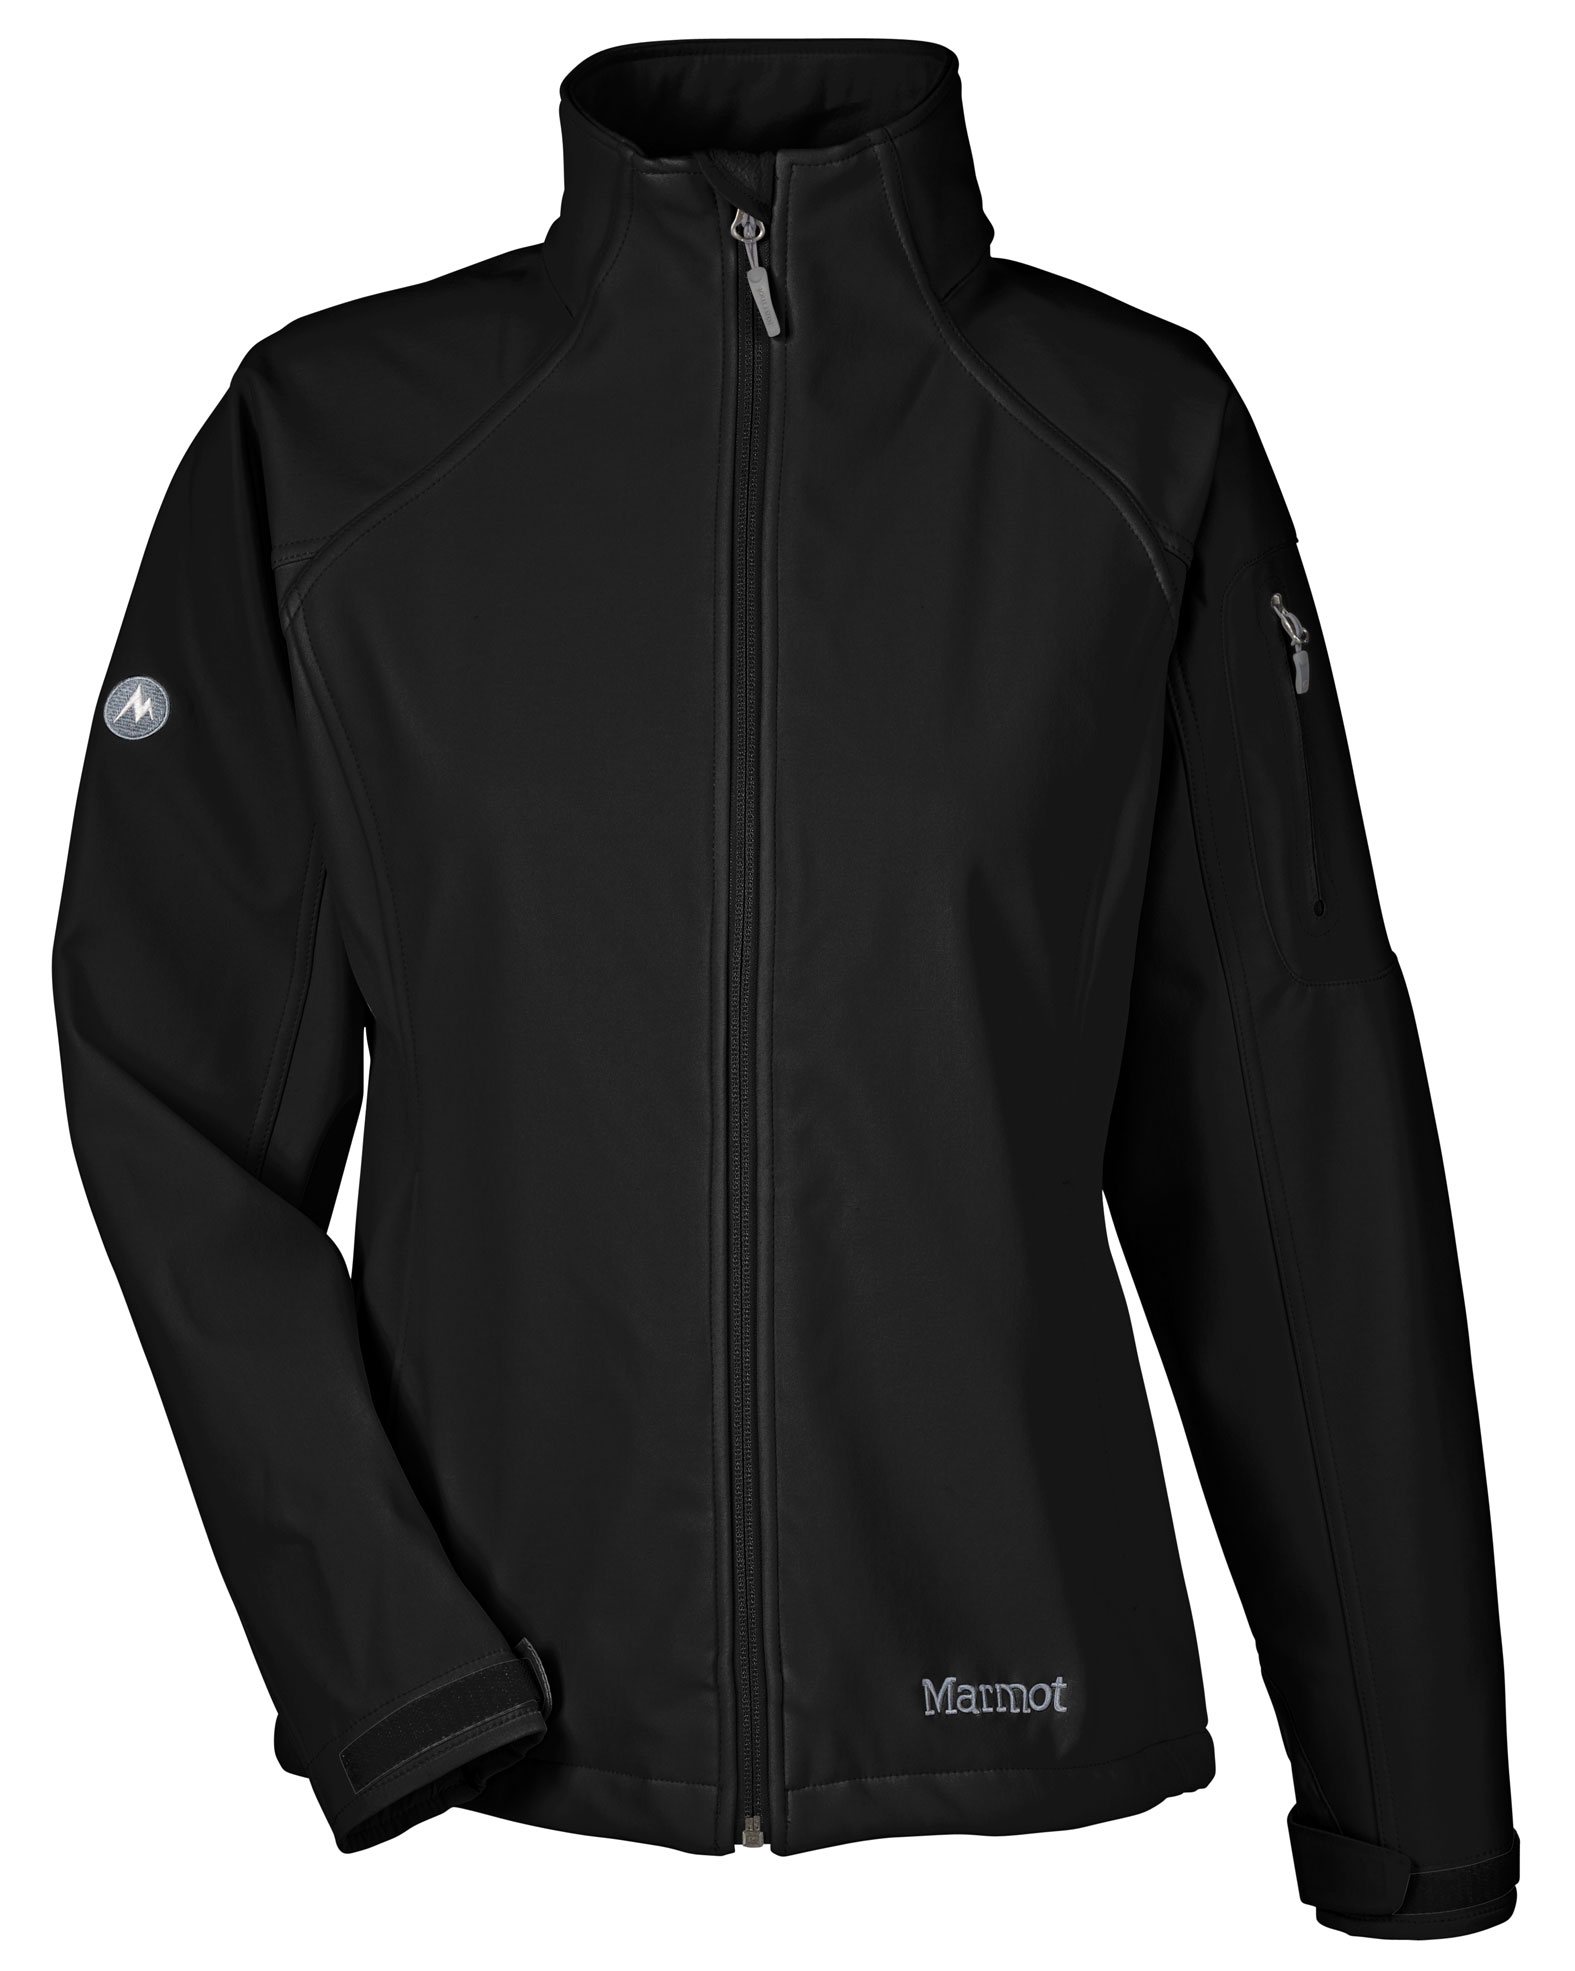 Marmot Ladies Gravity Jacket